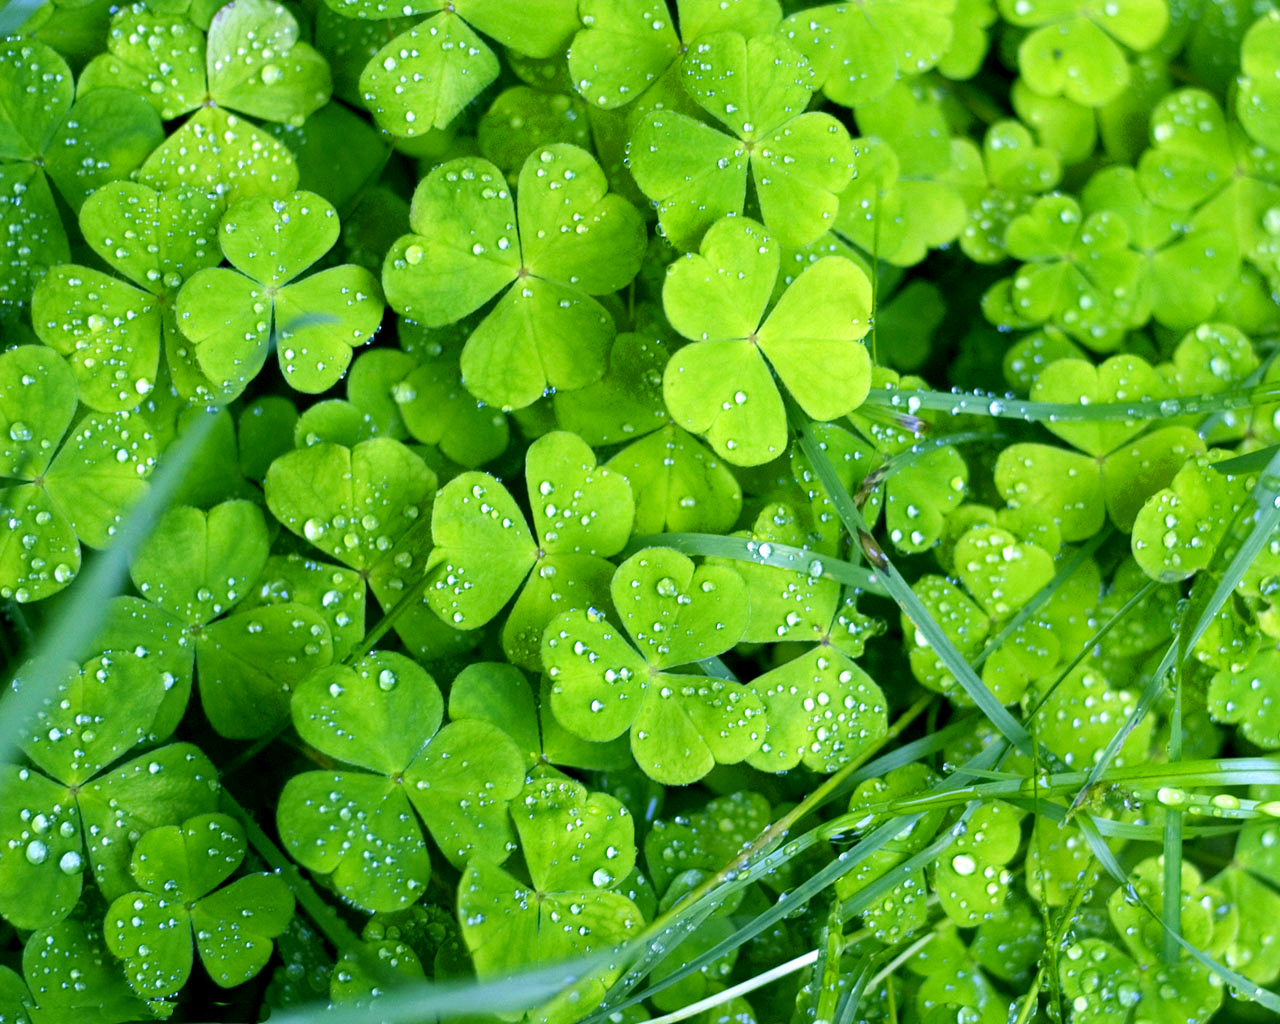 Green clover wallpapers and images - wallpapers, pictures, photos